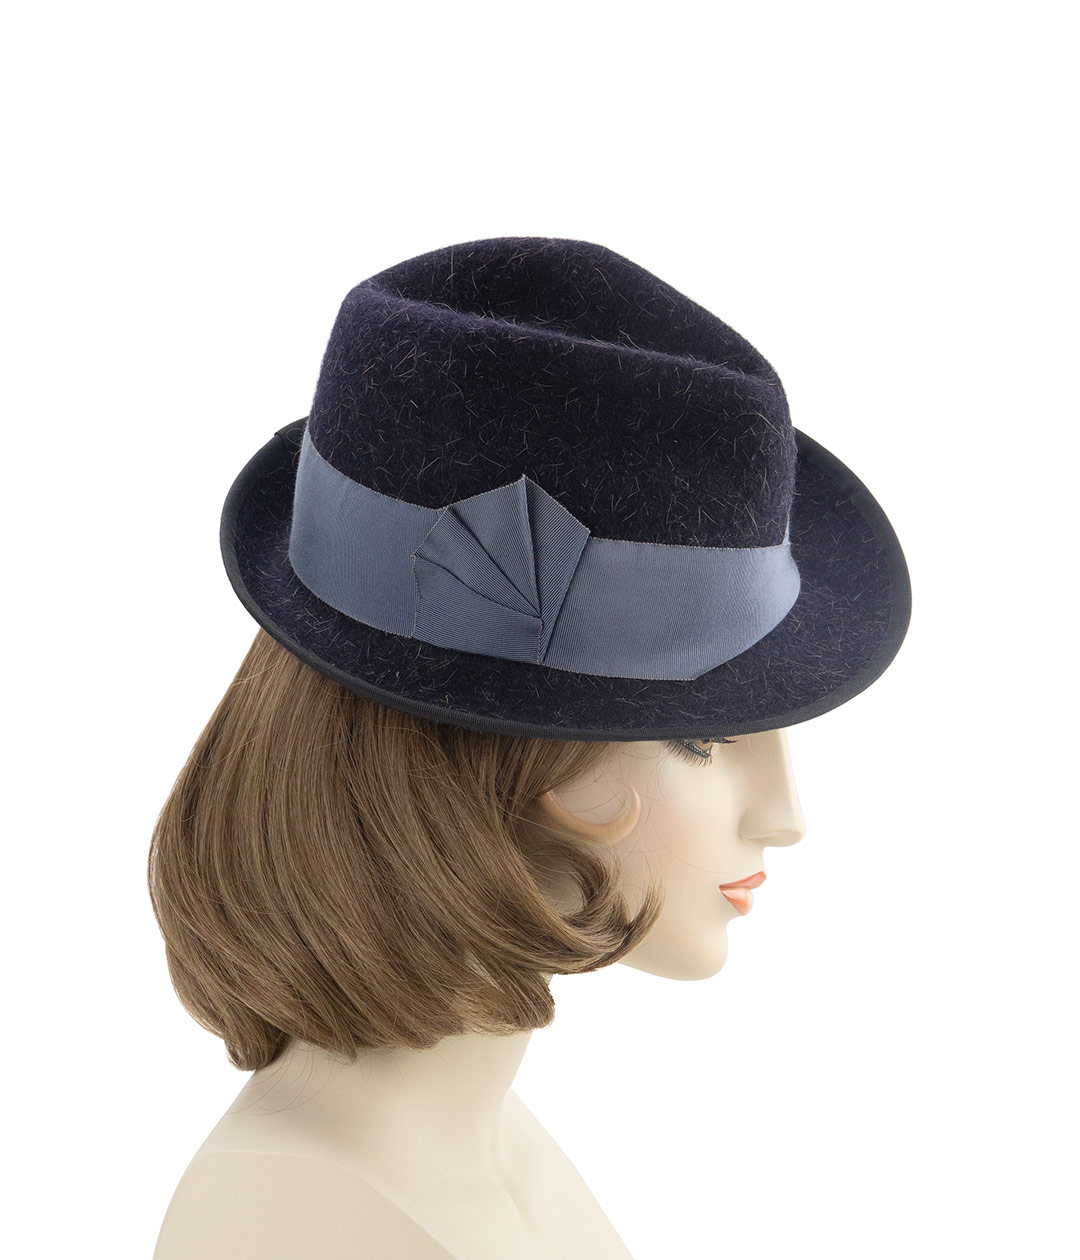 Right side view of black tilt fedora on a mannequin head.